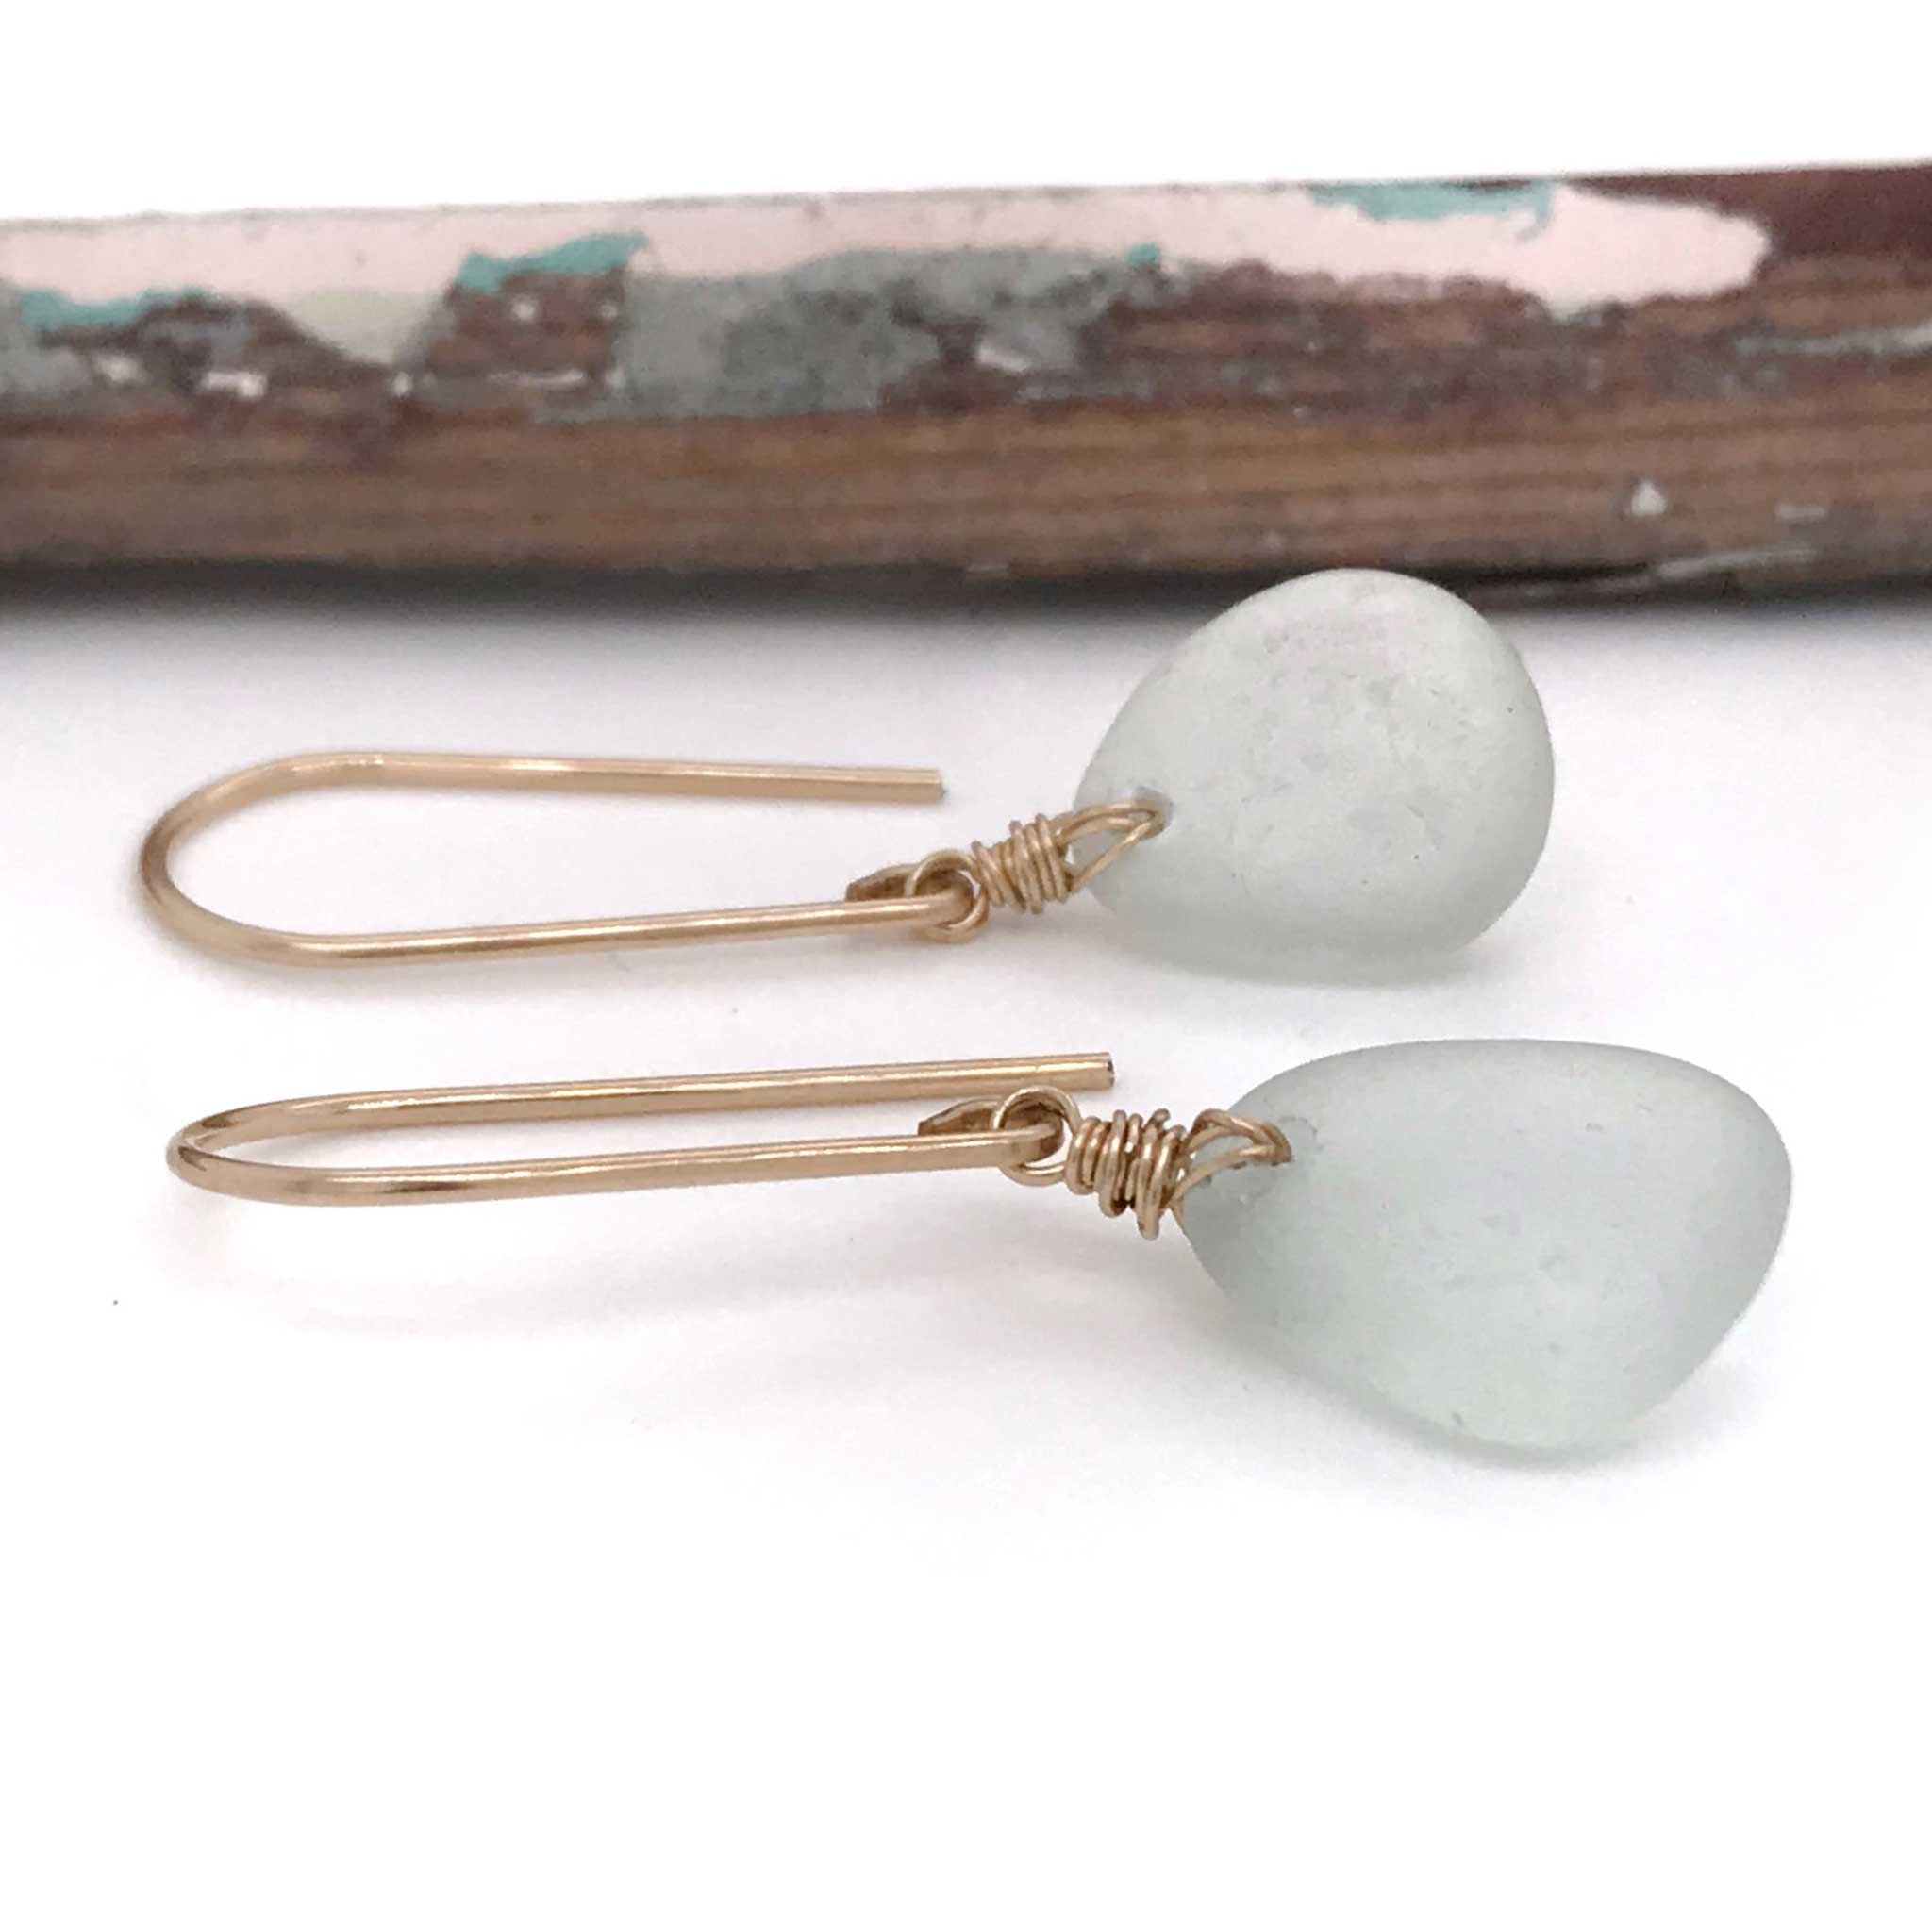 seafoam sea glass earrings on gold hooks kriket broadhurst jewellery Australia